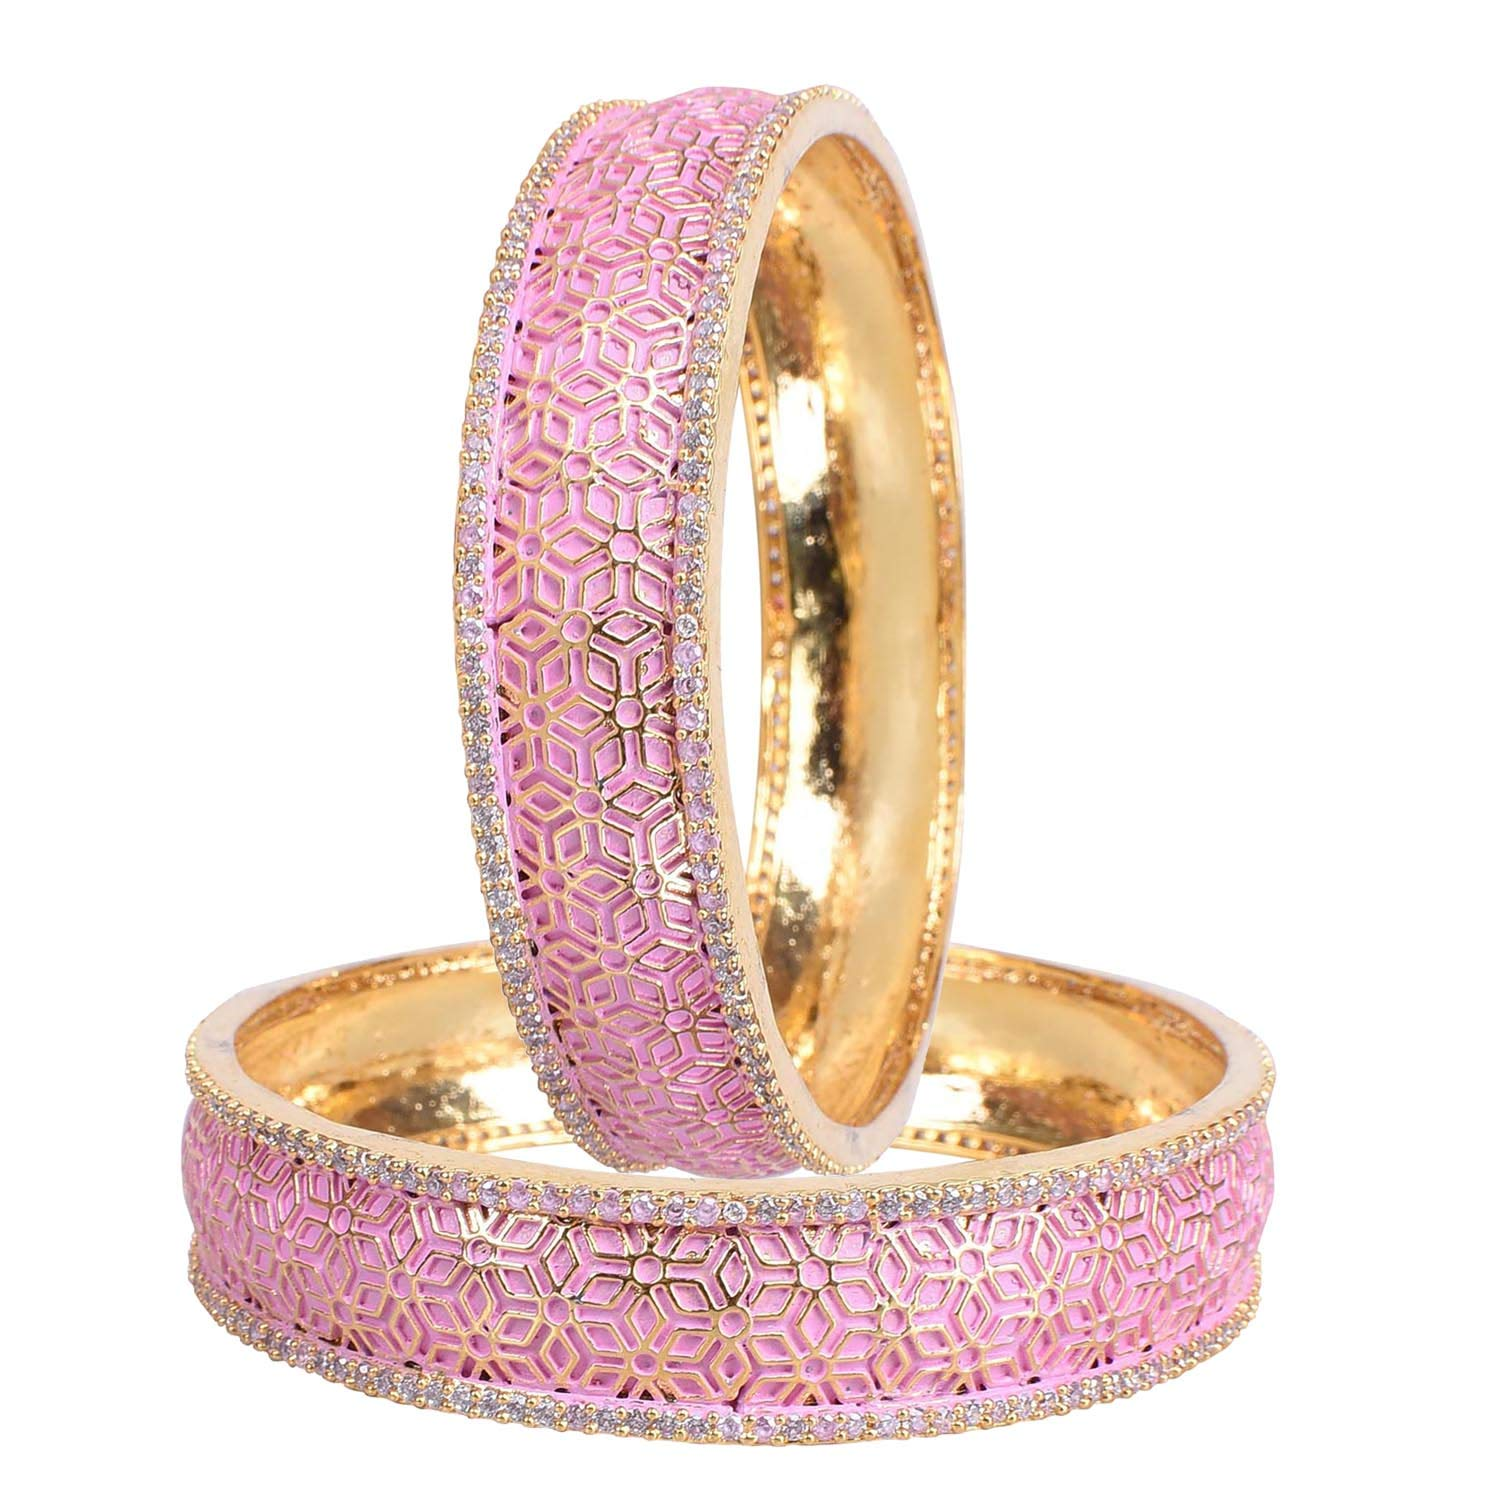 Ratnavali jewels American Diamond CZ Gold Plated Pink Meena Enamel White Bangles for Women/Girls RV3195P-2.8 (B07LBYXF86) Amazon Price History, Amazon Price Tracker